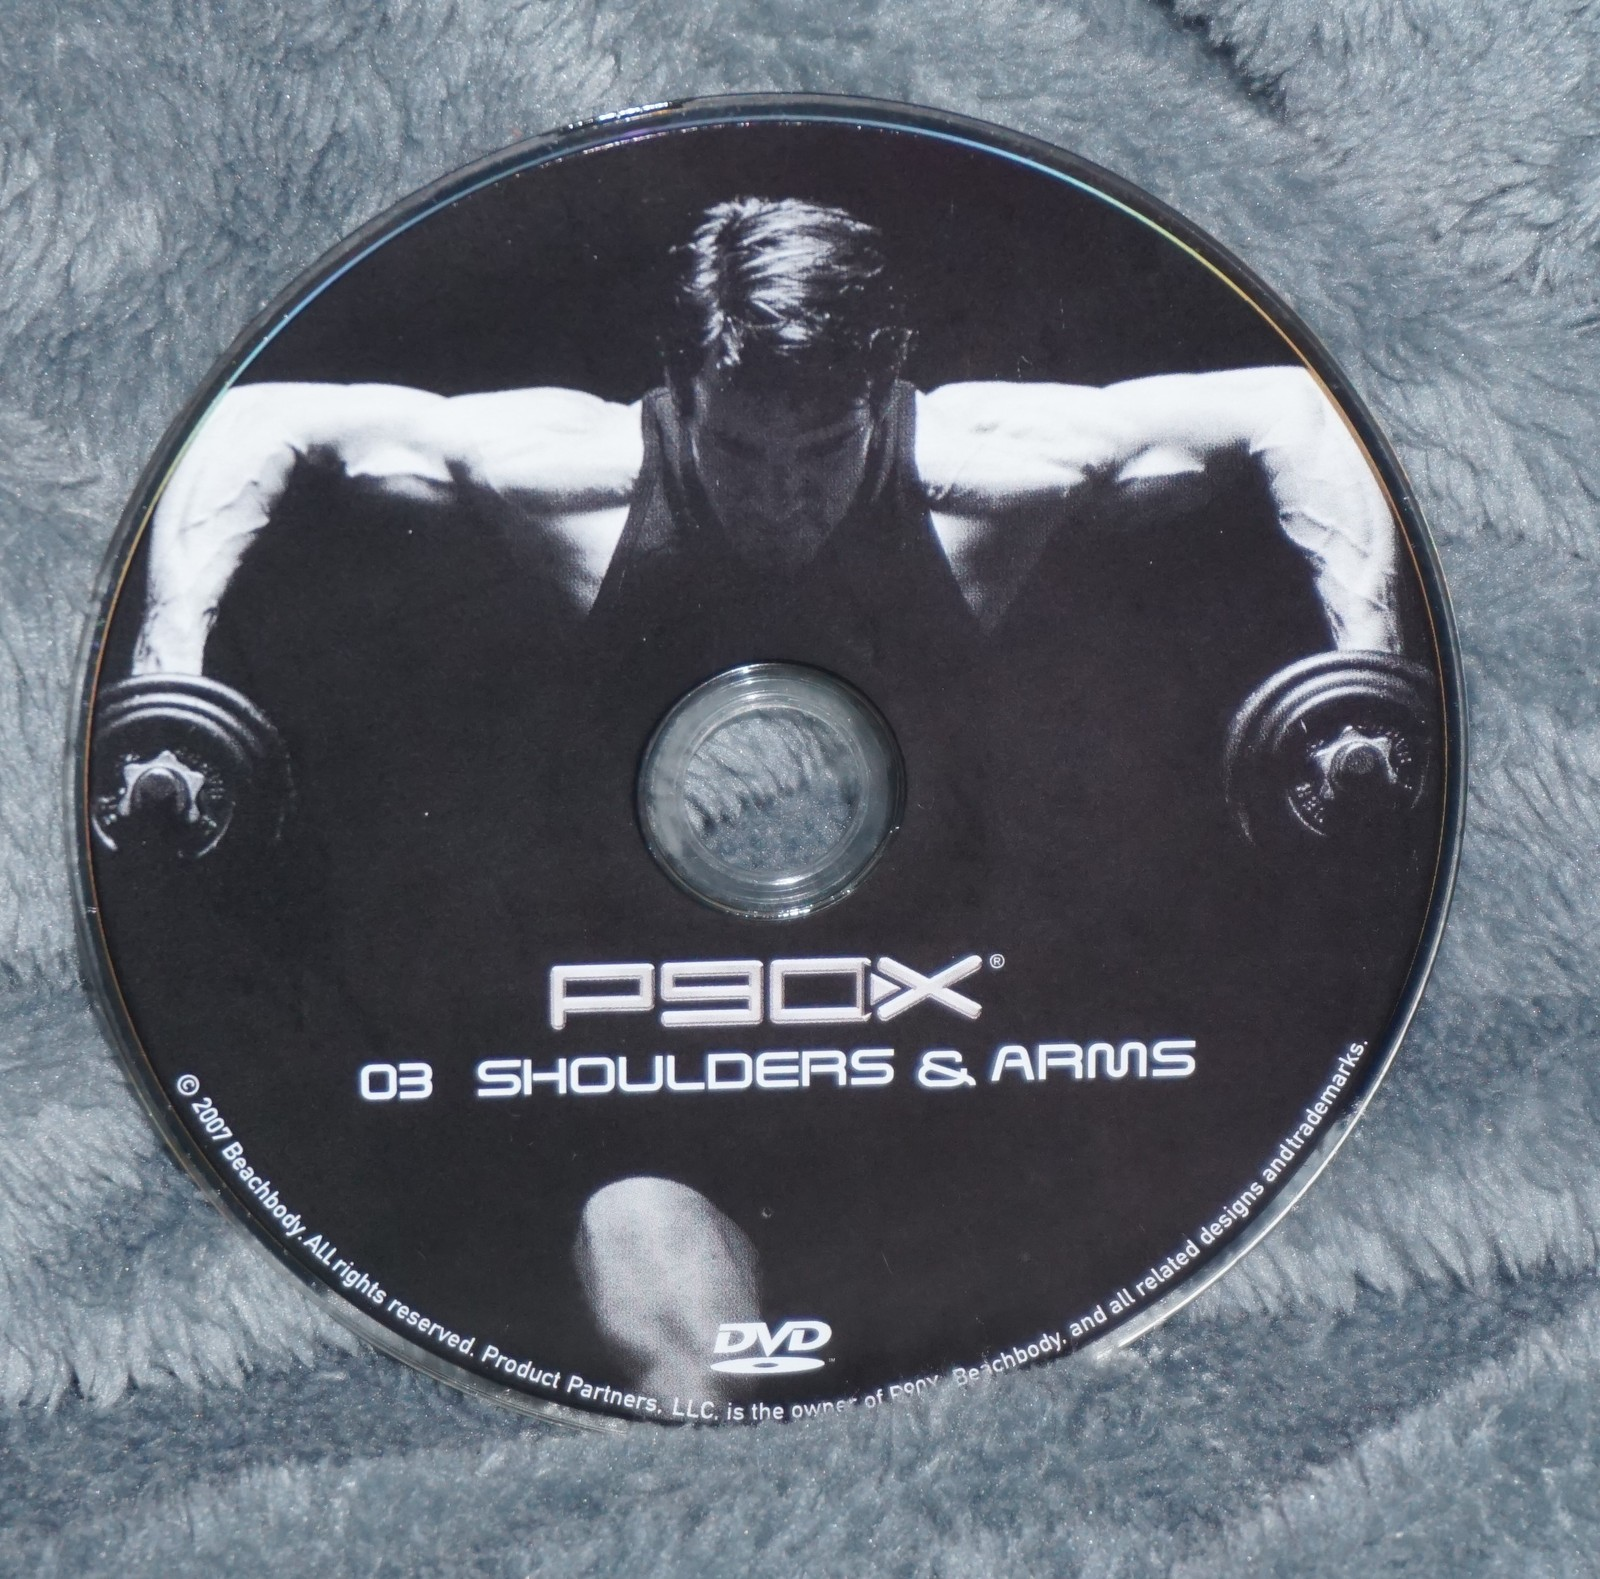 P90x Dvd Set For Sale